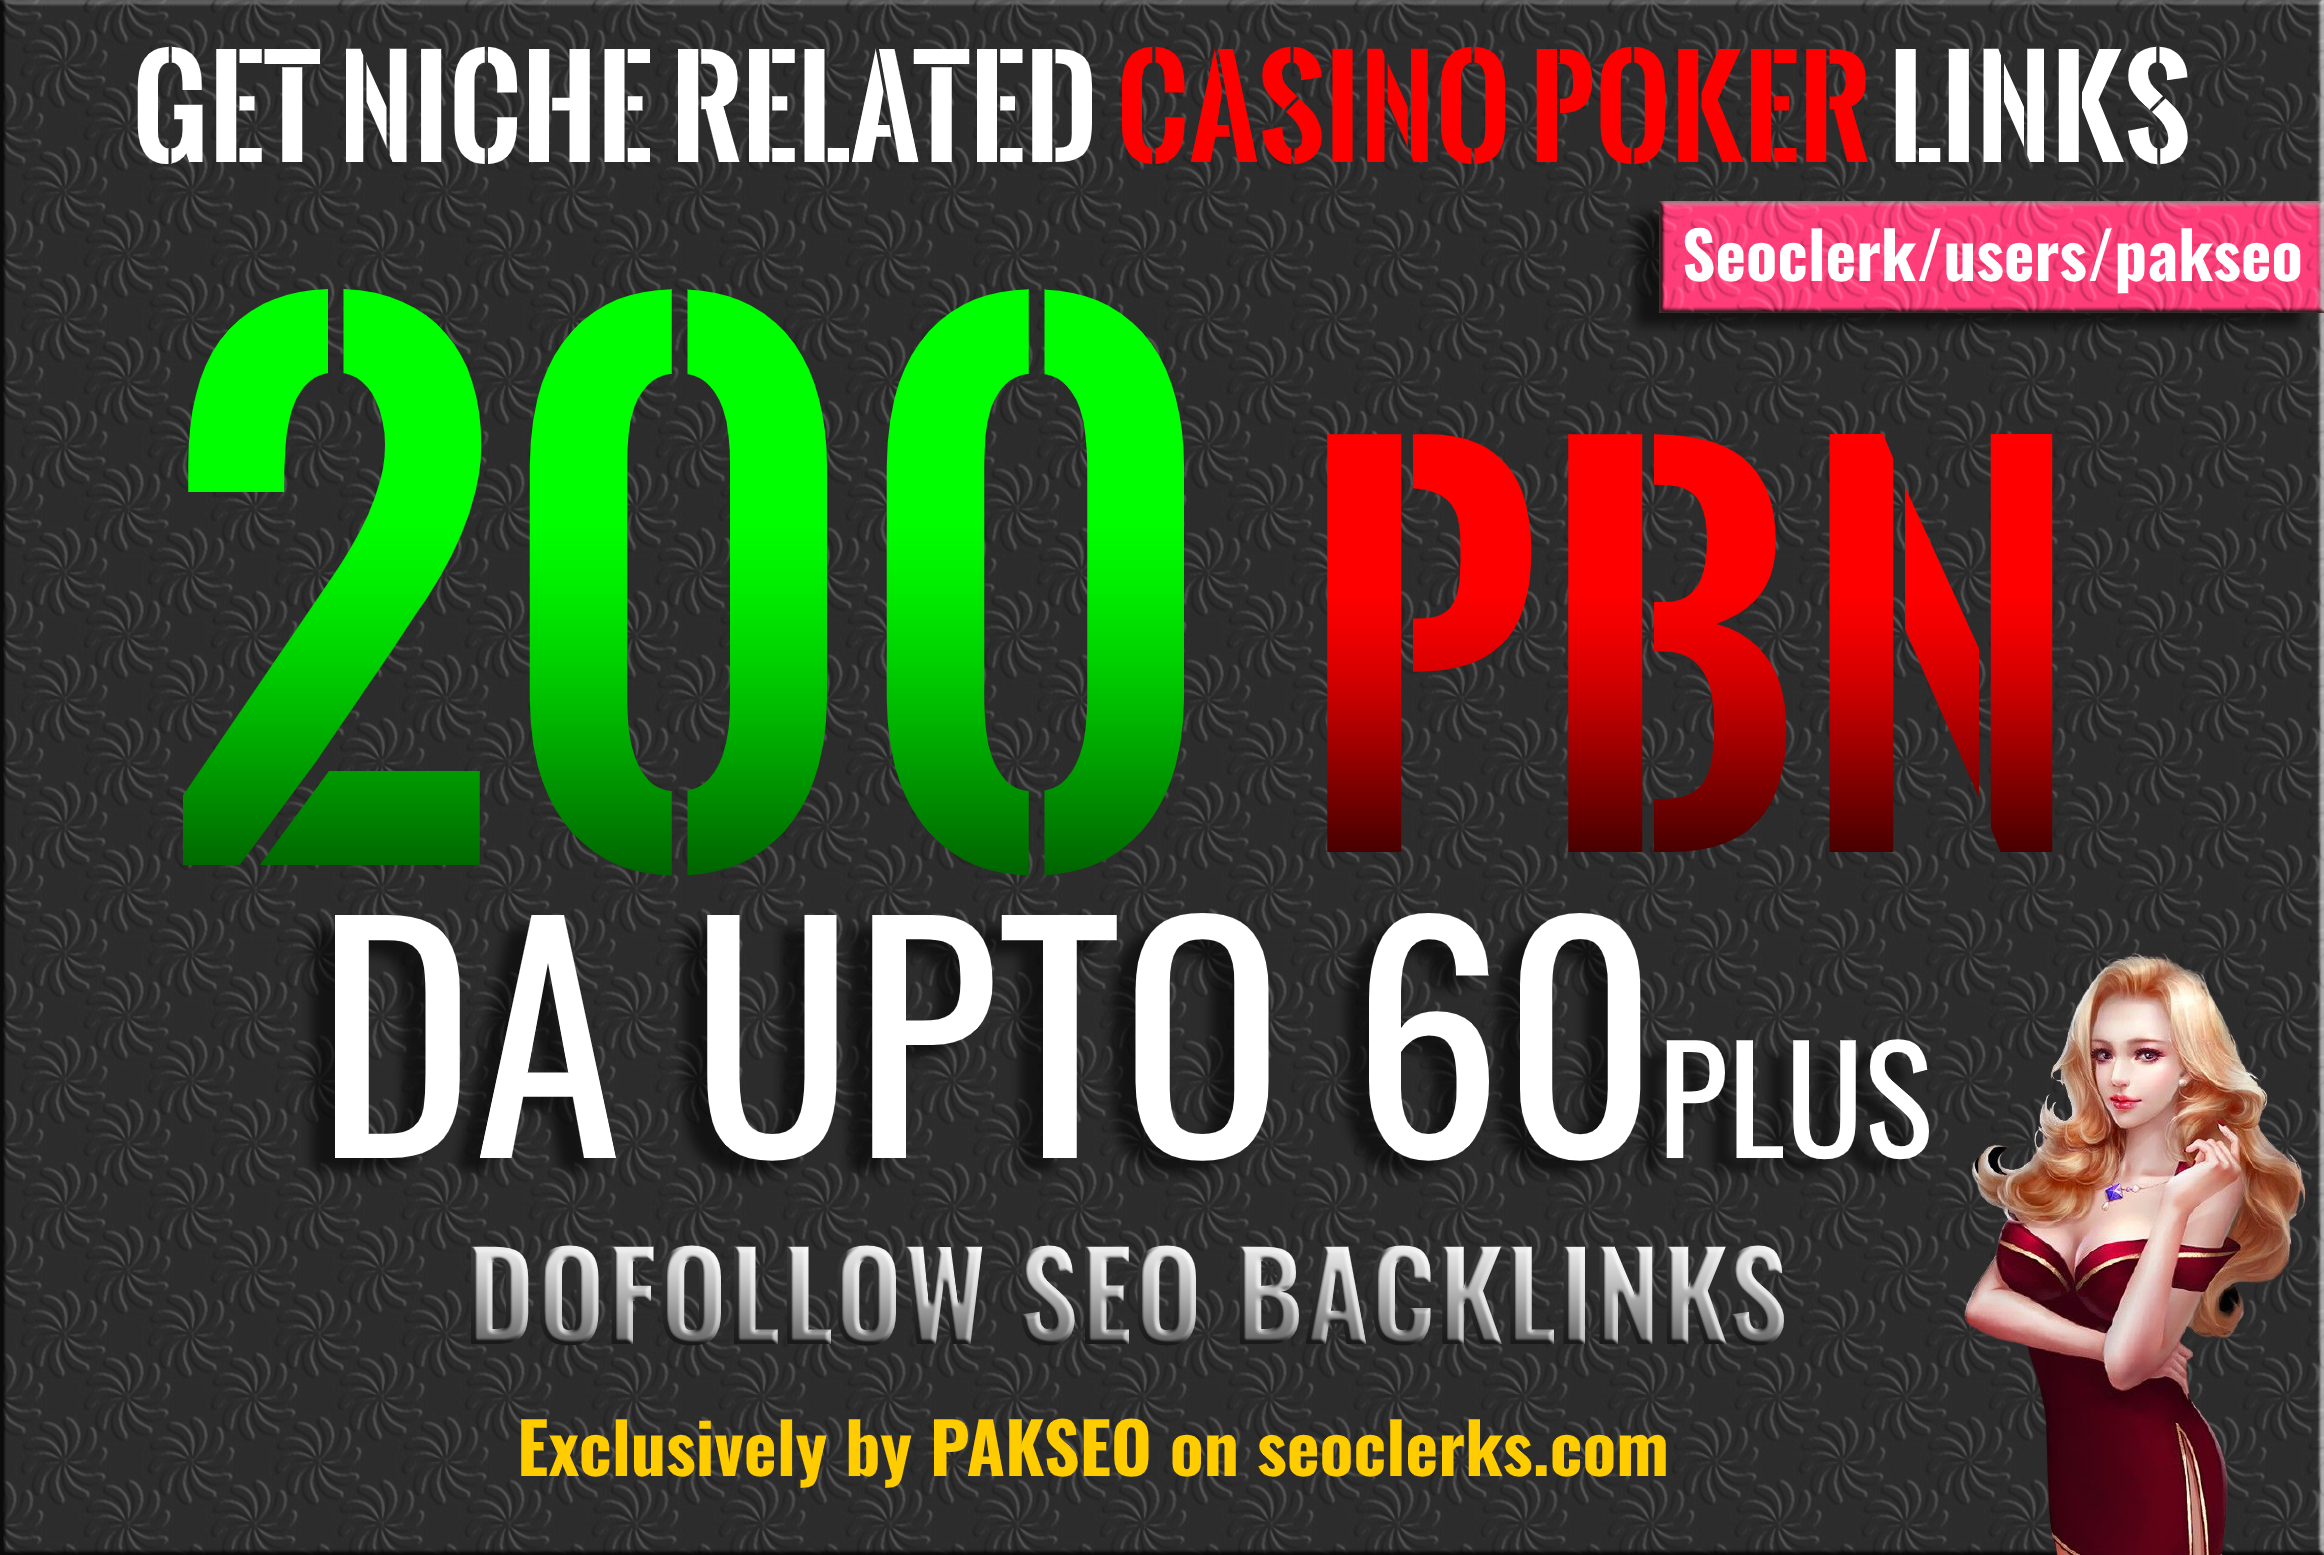 Build 200 PBN Casino Poker Gambling Backlinks DA Upto 60 plus All are Unique Domain PBNs links